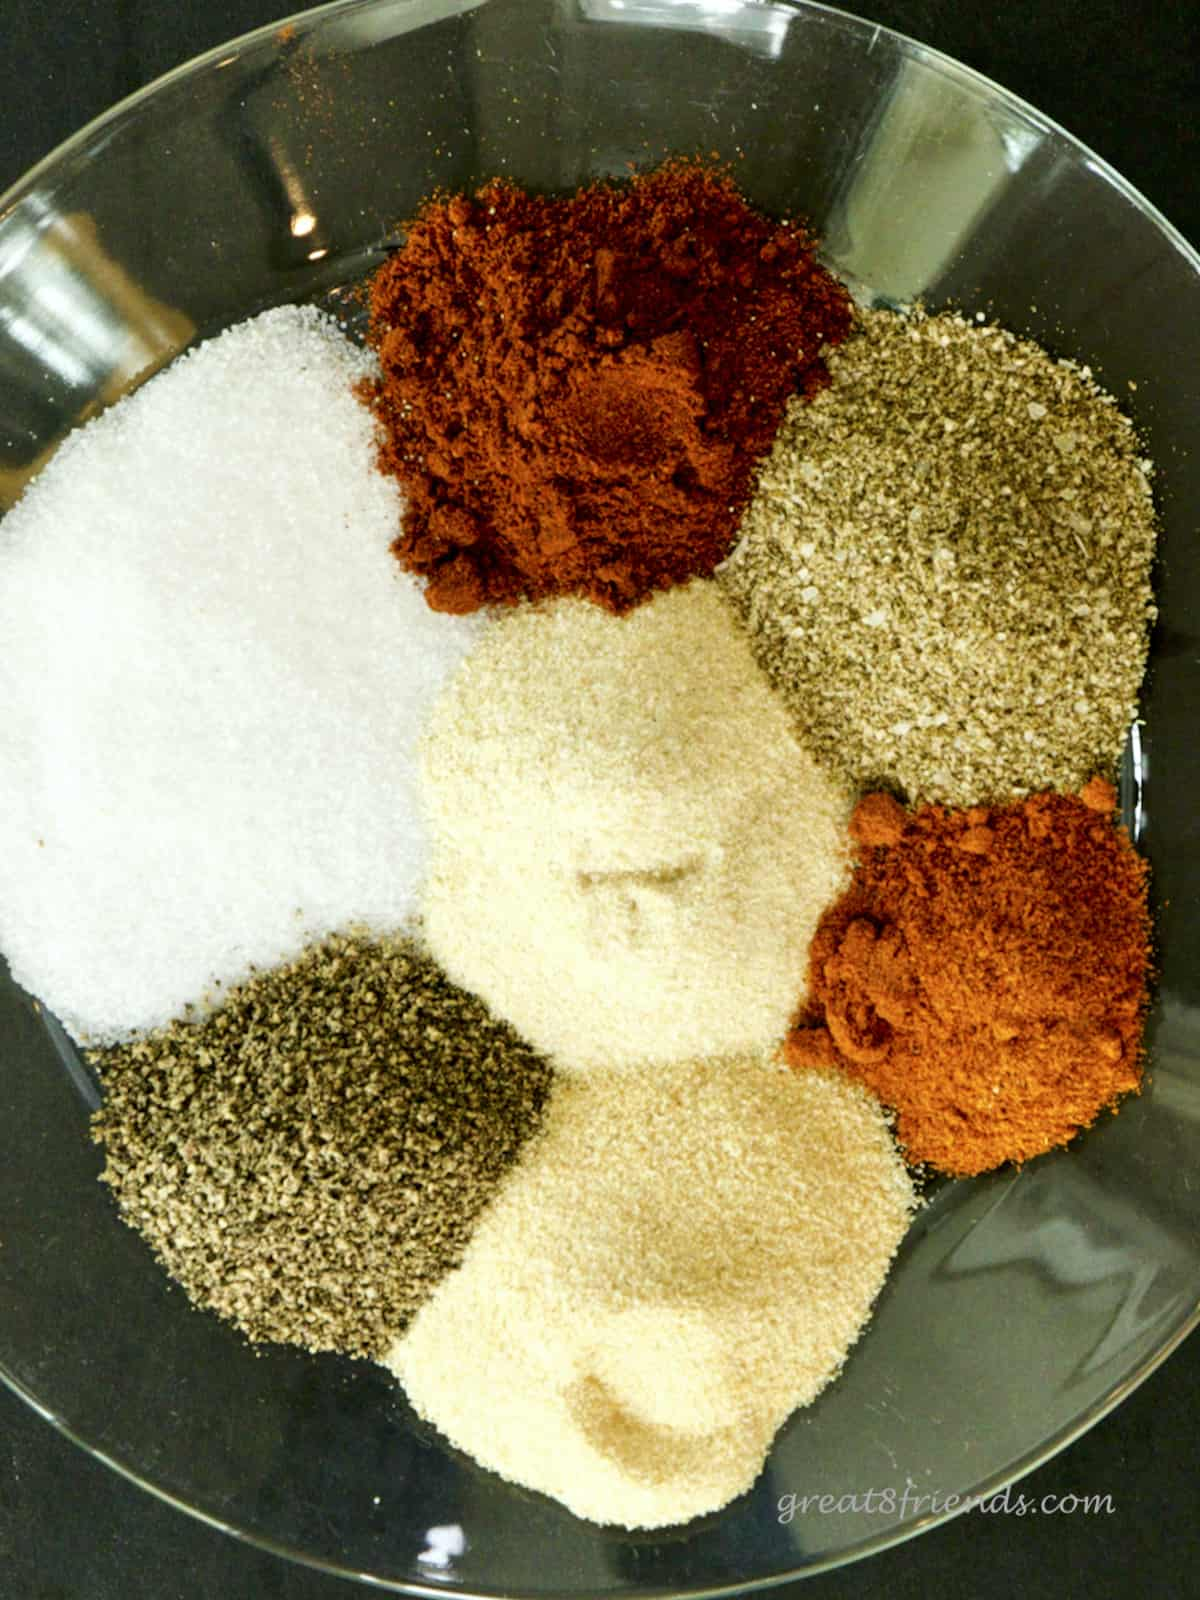 Overhead shot of 6 spices and some salt mounded on a glass plate.